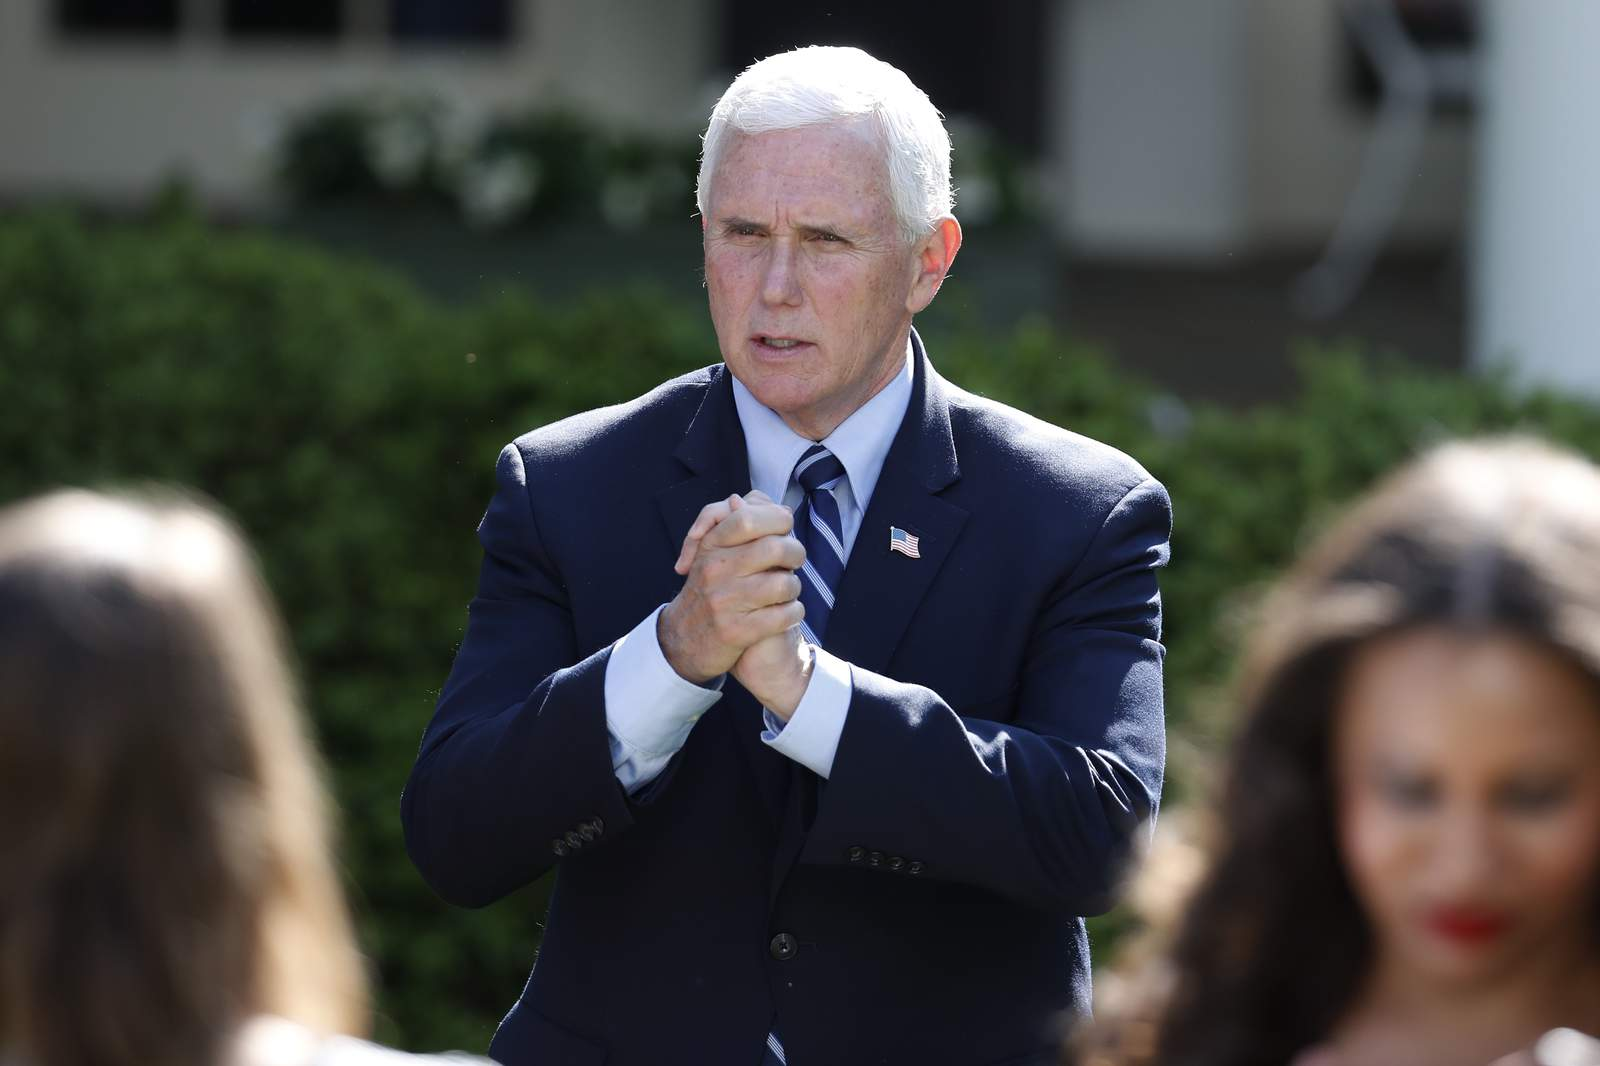 Vice President Mike Pence to Discuss Theme Park Reopening Plans in Orlando on Wednesday